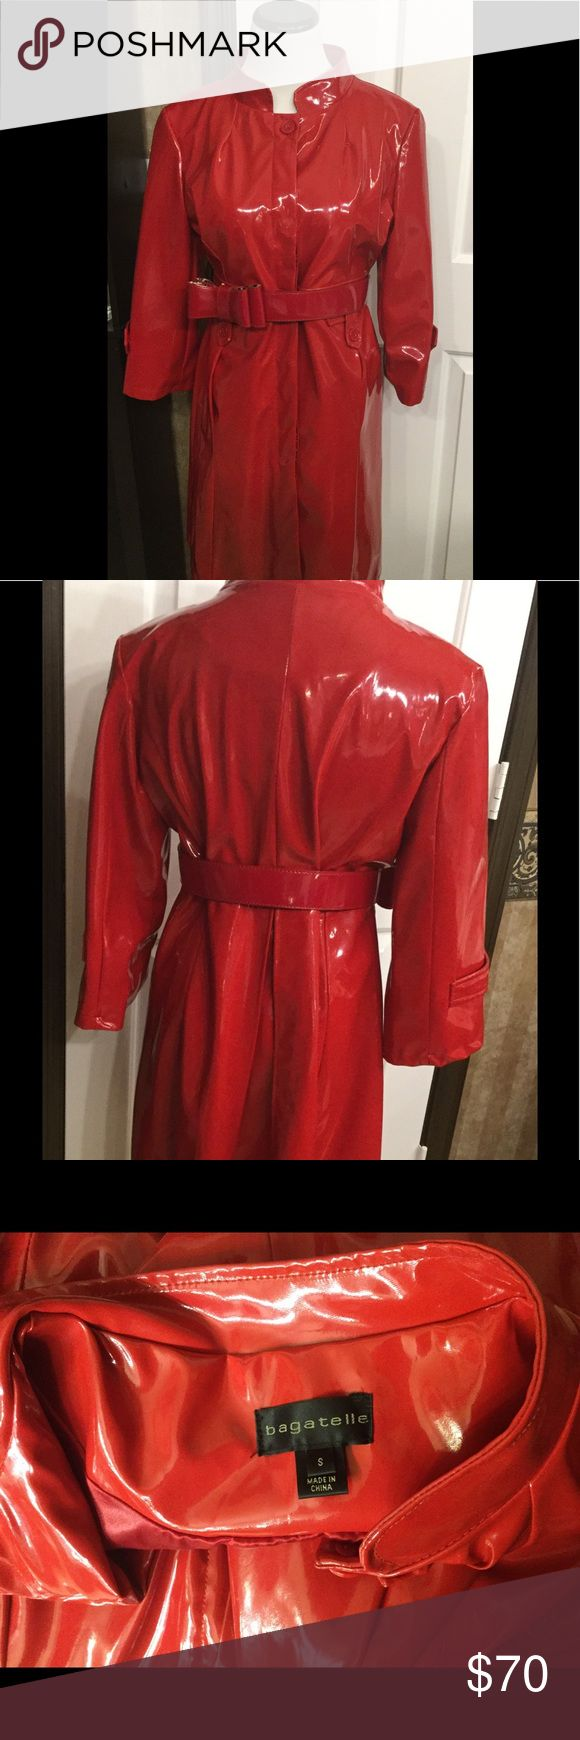 Bagatelle Fashion Red RAIN coat ☔️ Super cute Fashionable rain coat! button front. hidden side pockets. red satin lining.figure flattering. Belt dose not come with you can accessorize any way you wish. Perfect condition like New ❤️❤️❤️ Bagatelle Jackets & Coats Trench Coats